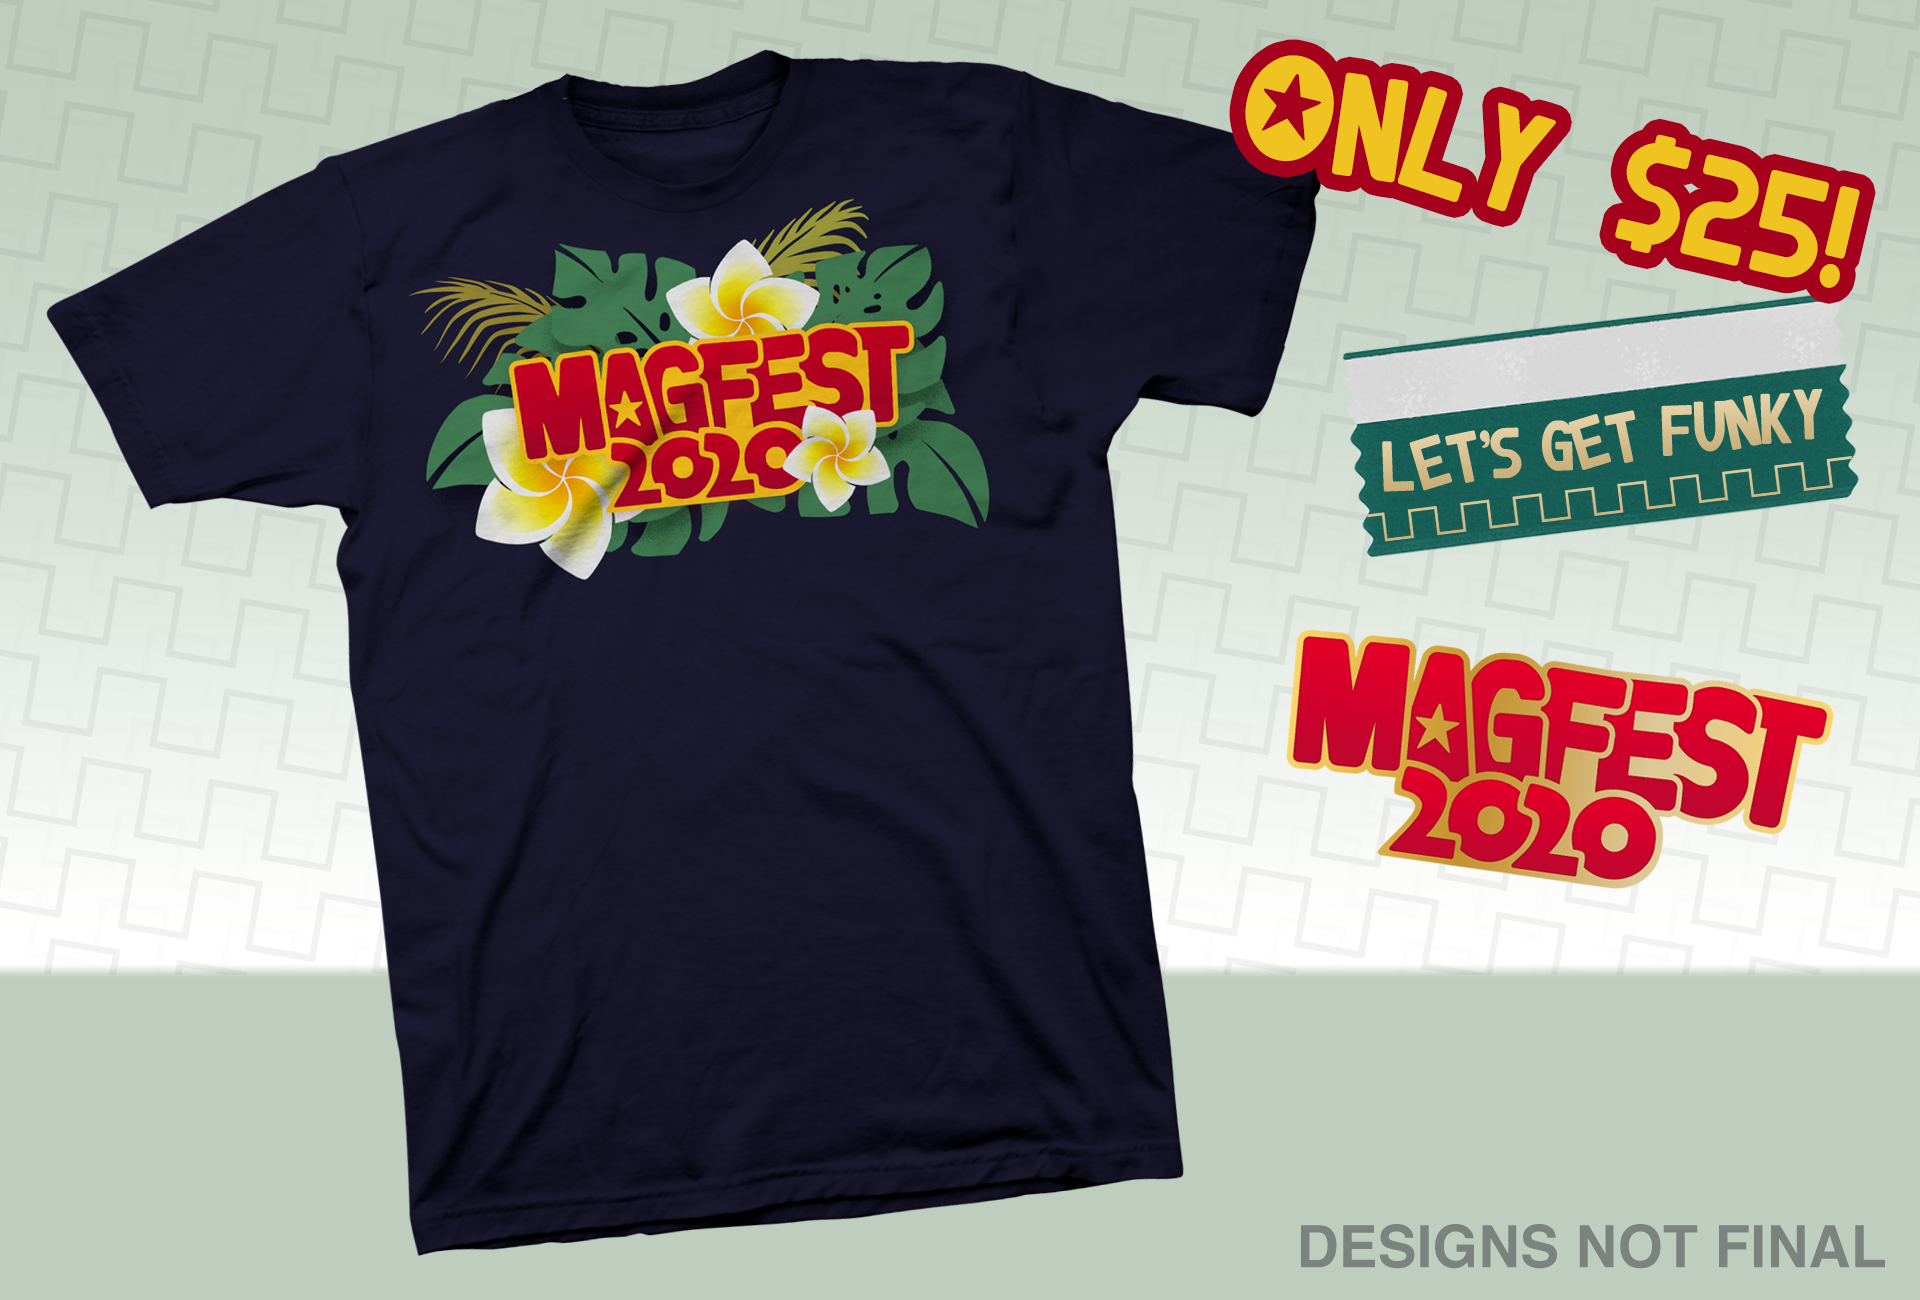 T-Shirt Tier - For a mere $25, you'll get an exclusive never-to-be-sold-anywhere-else event T-shirt, featuring our funky 2020 logo.You also get an enamel pin of our Super MAGFest 2020 logo! Or maybe a different design. We haven't decided yet. But it'll be rad!